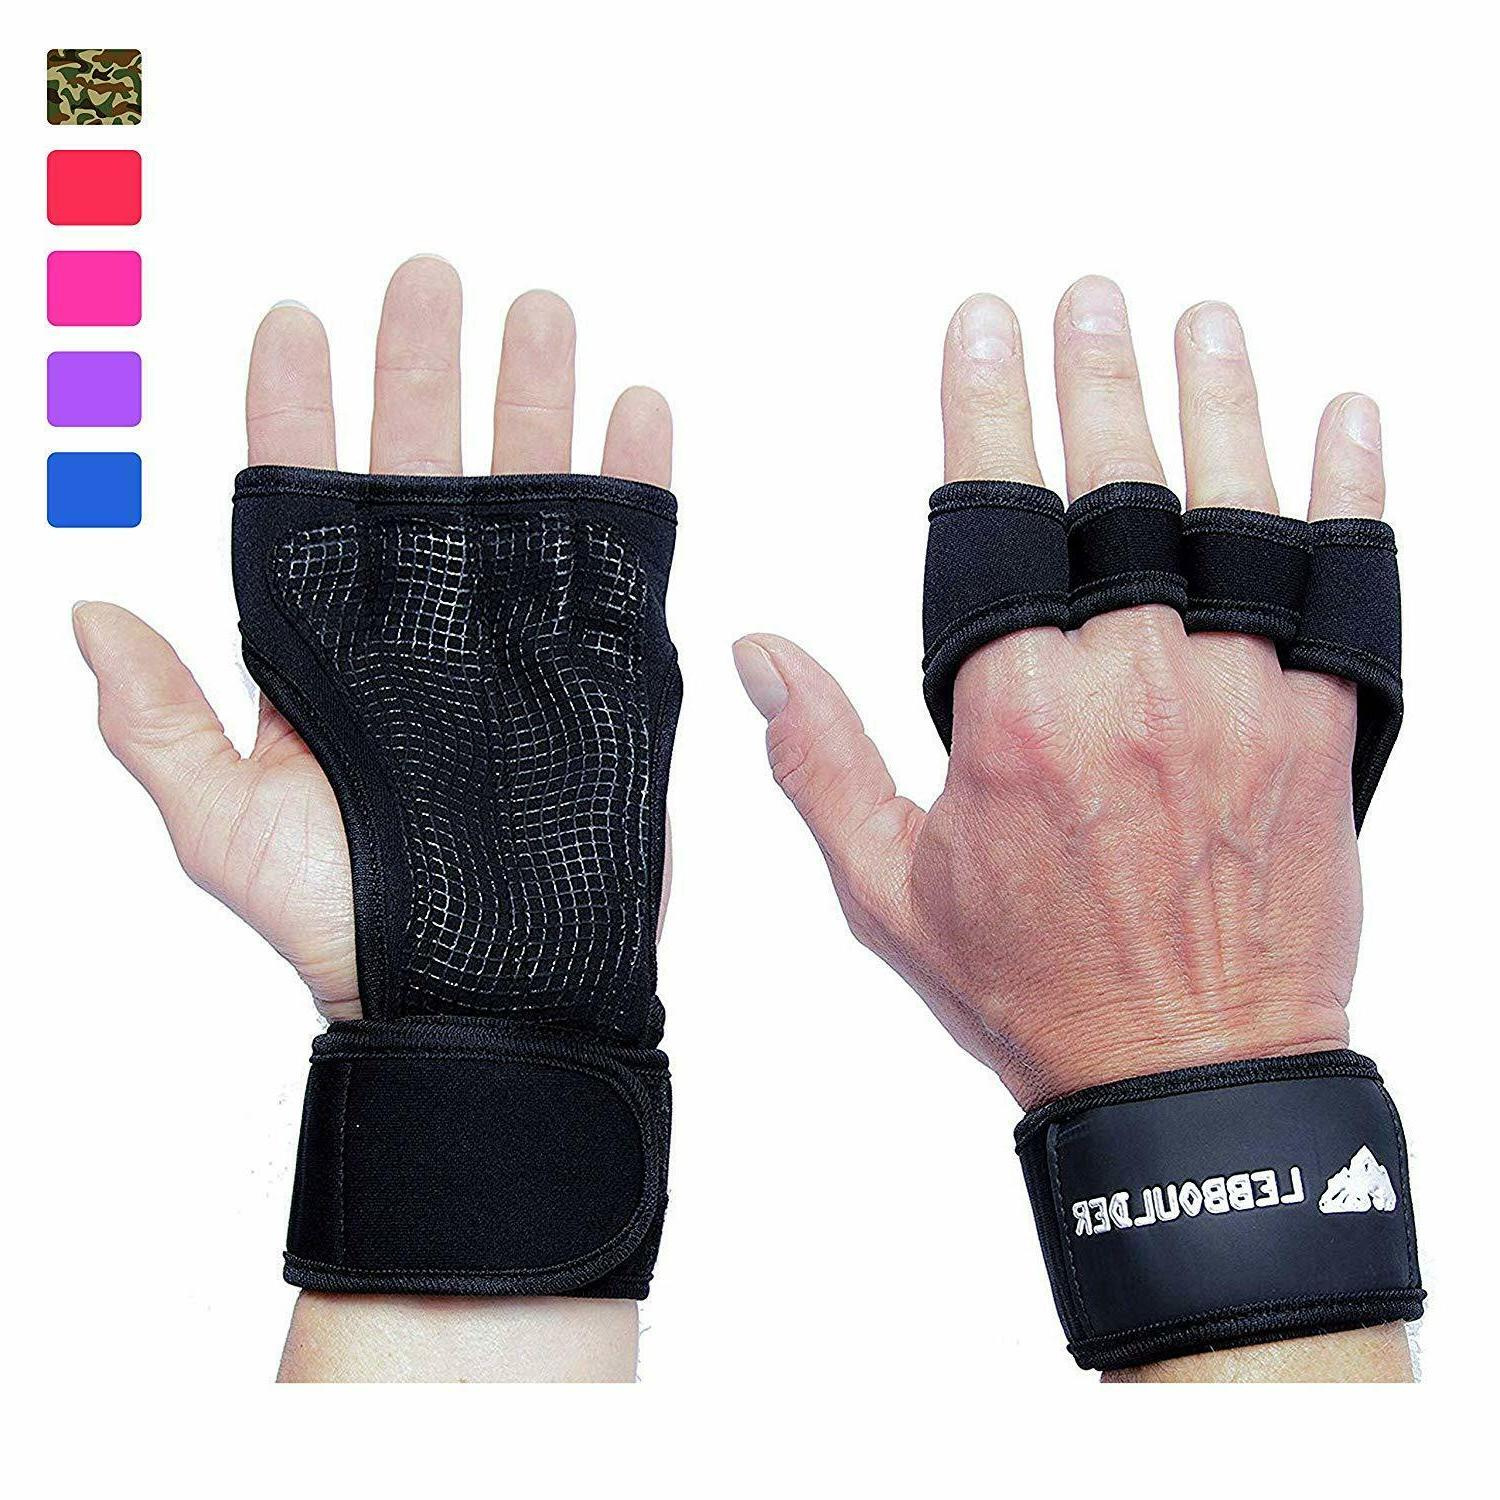 workout gloves gym gloves weight lifting gloves